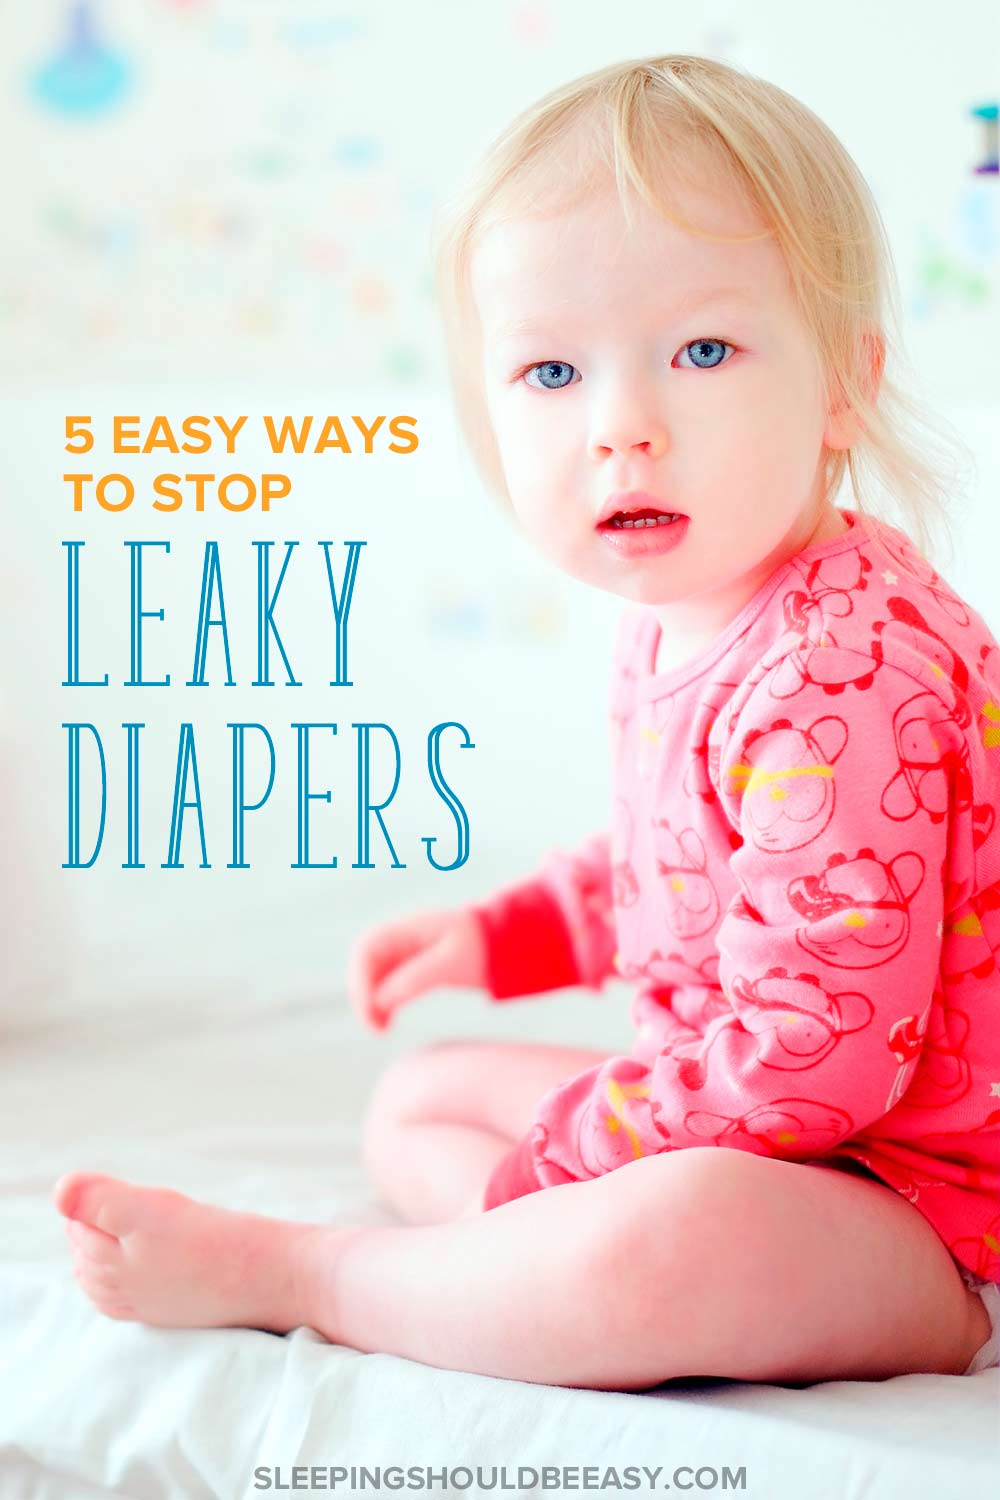 Does your child wake up with a wet diaper? Looking for diapers that don't leak at night? Stop leaky diapers at night with these effective tips.